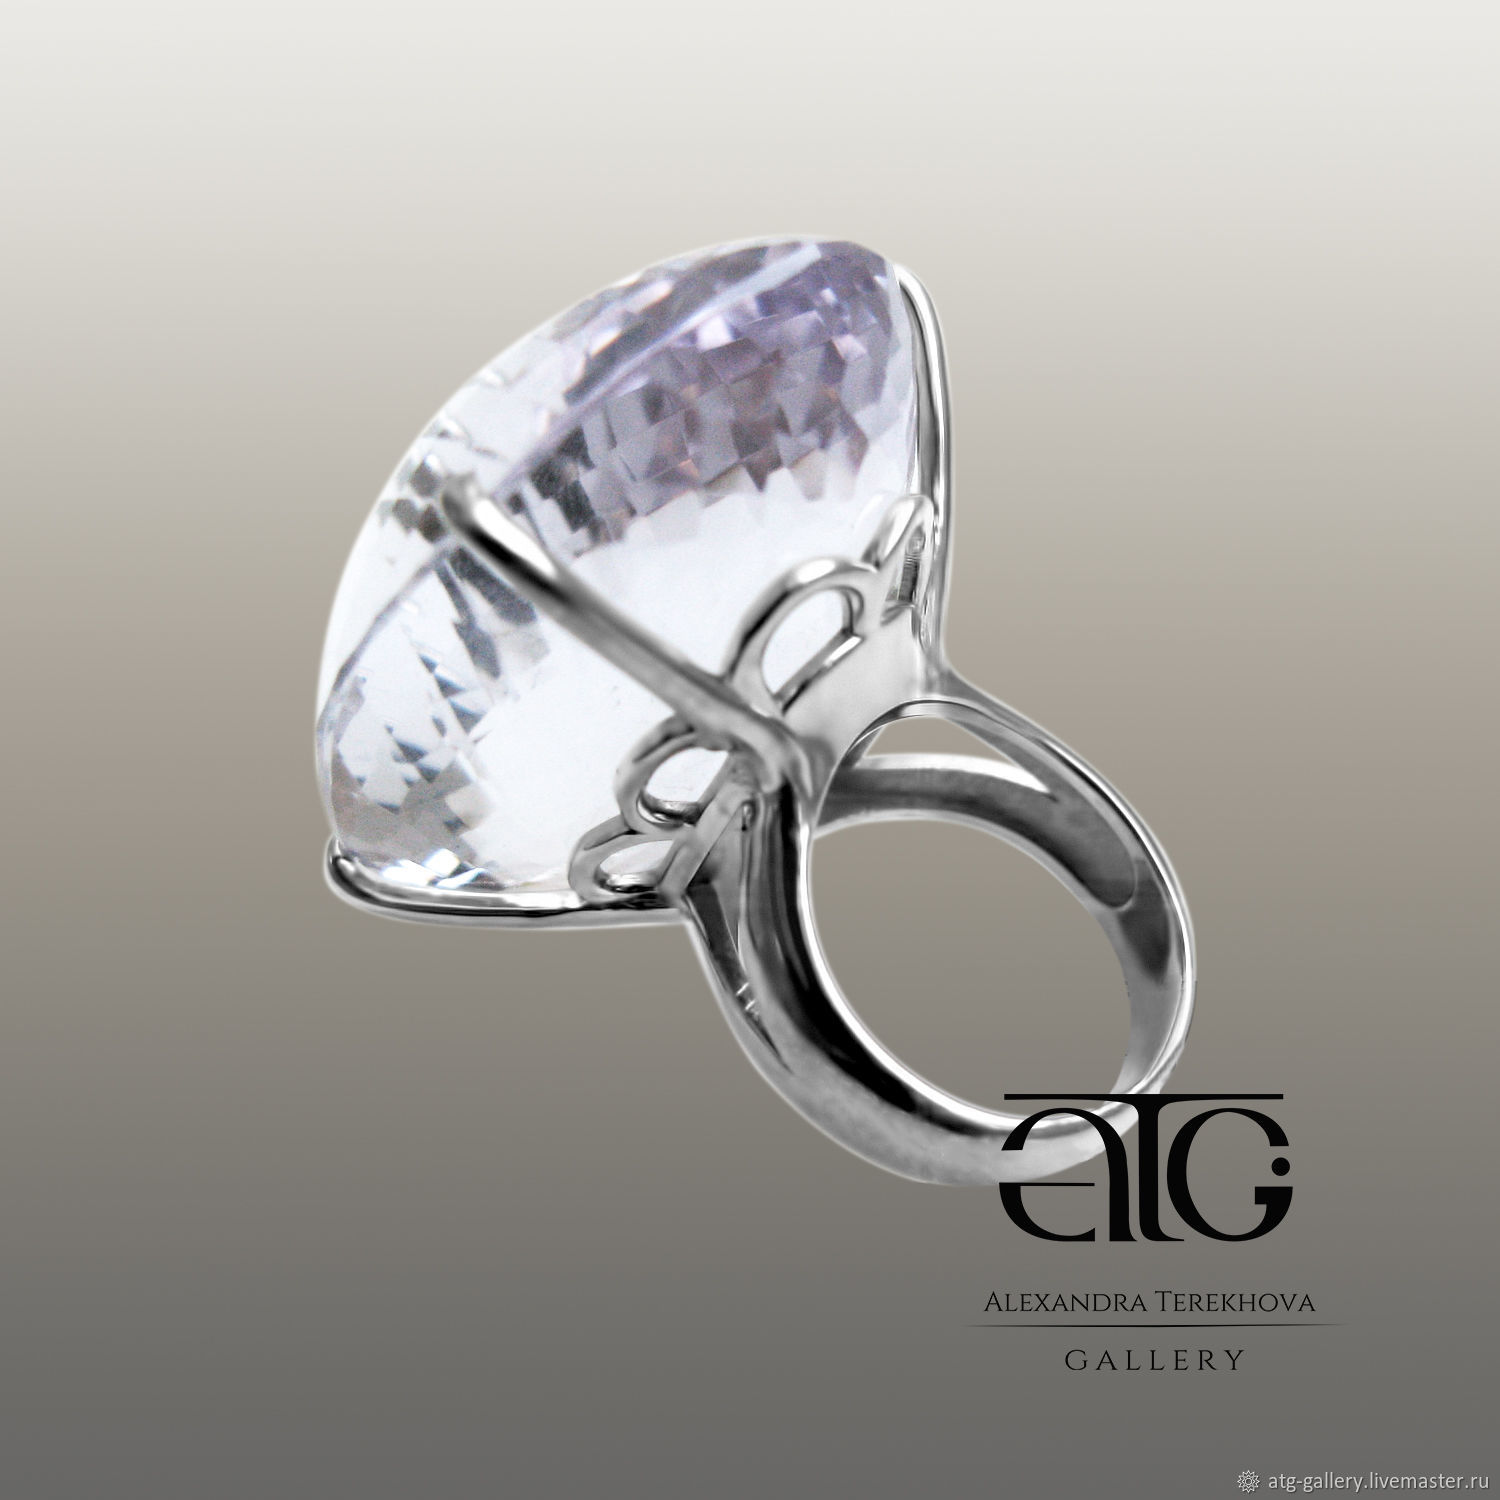 Large ring a luxurious amethyst quartz Carat 143.20